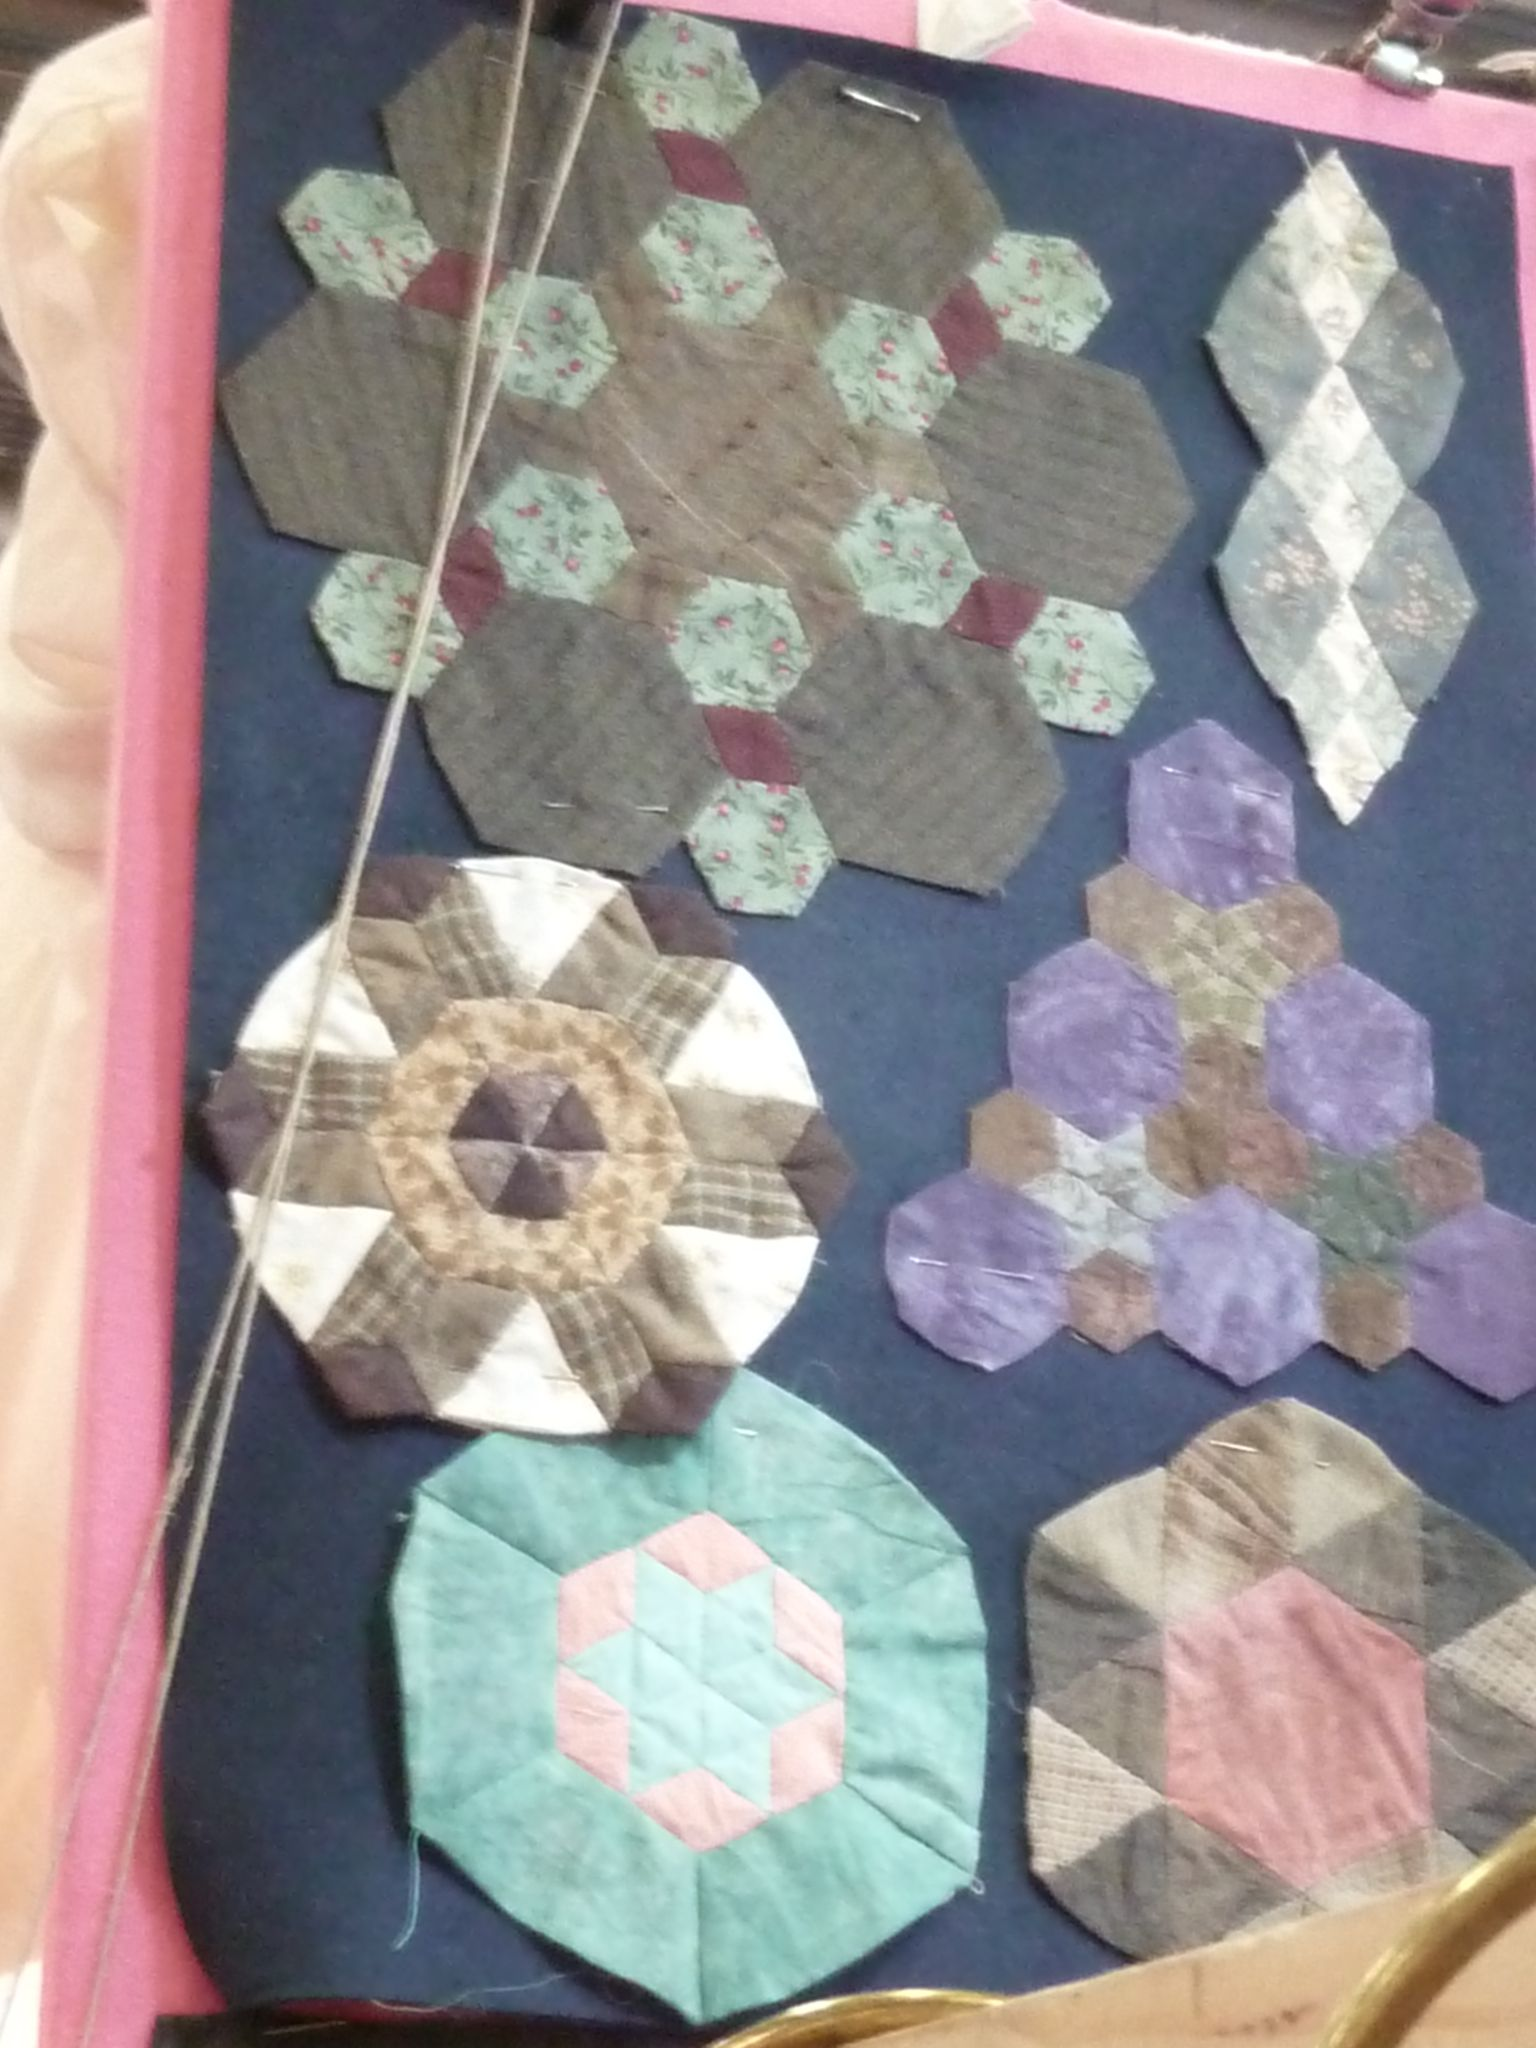 Pin by marylne los on quilts paper piecing pinterest paper english paper piecing le point patches crosses hexagons cartonnage plastic maxwellsz